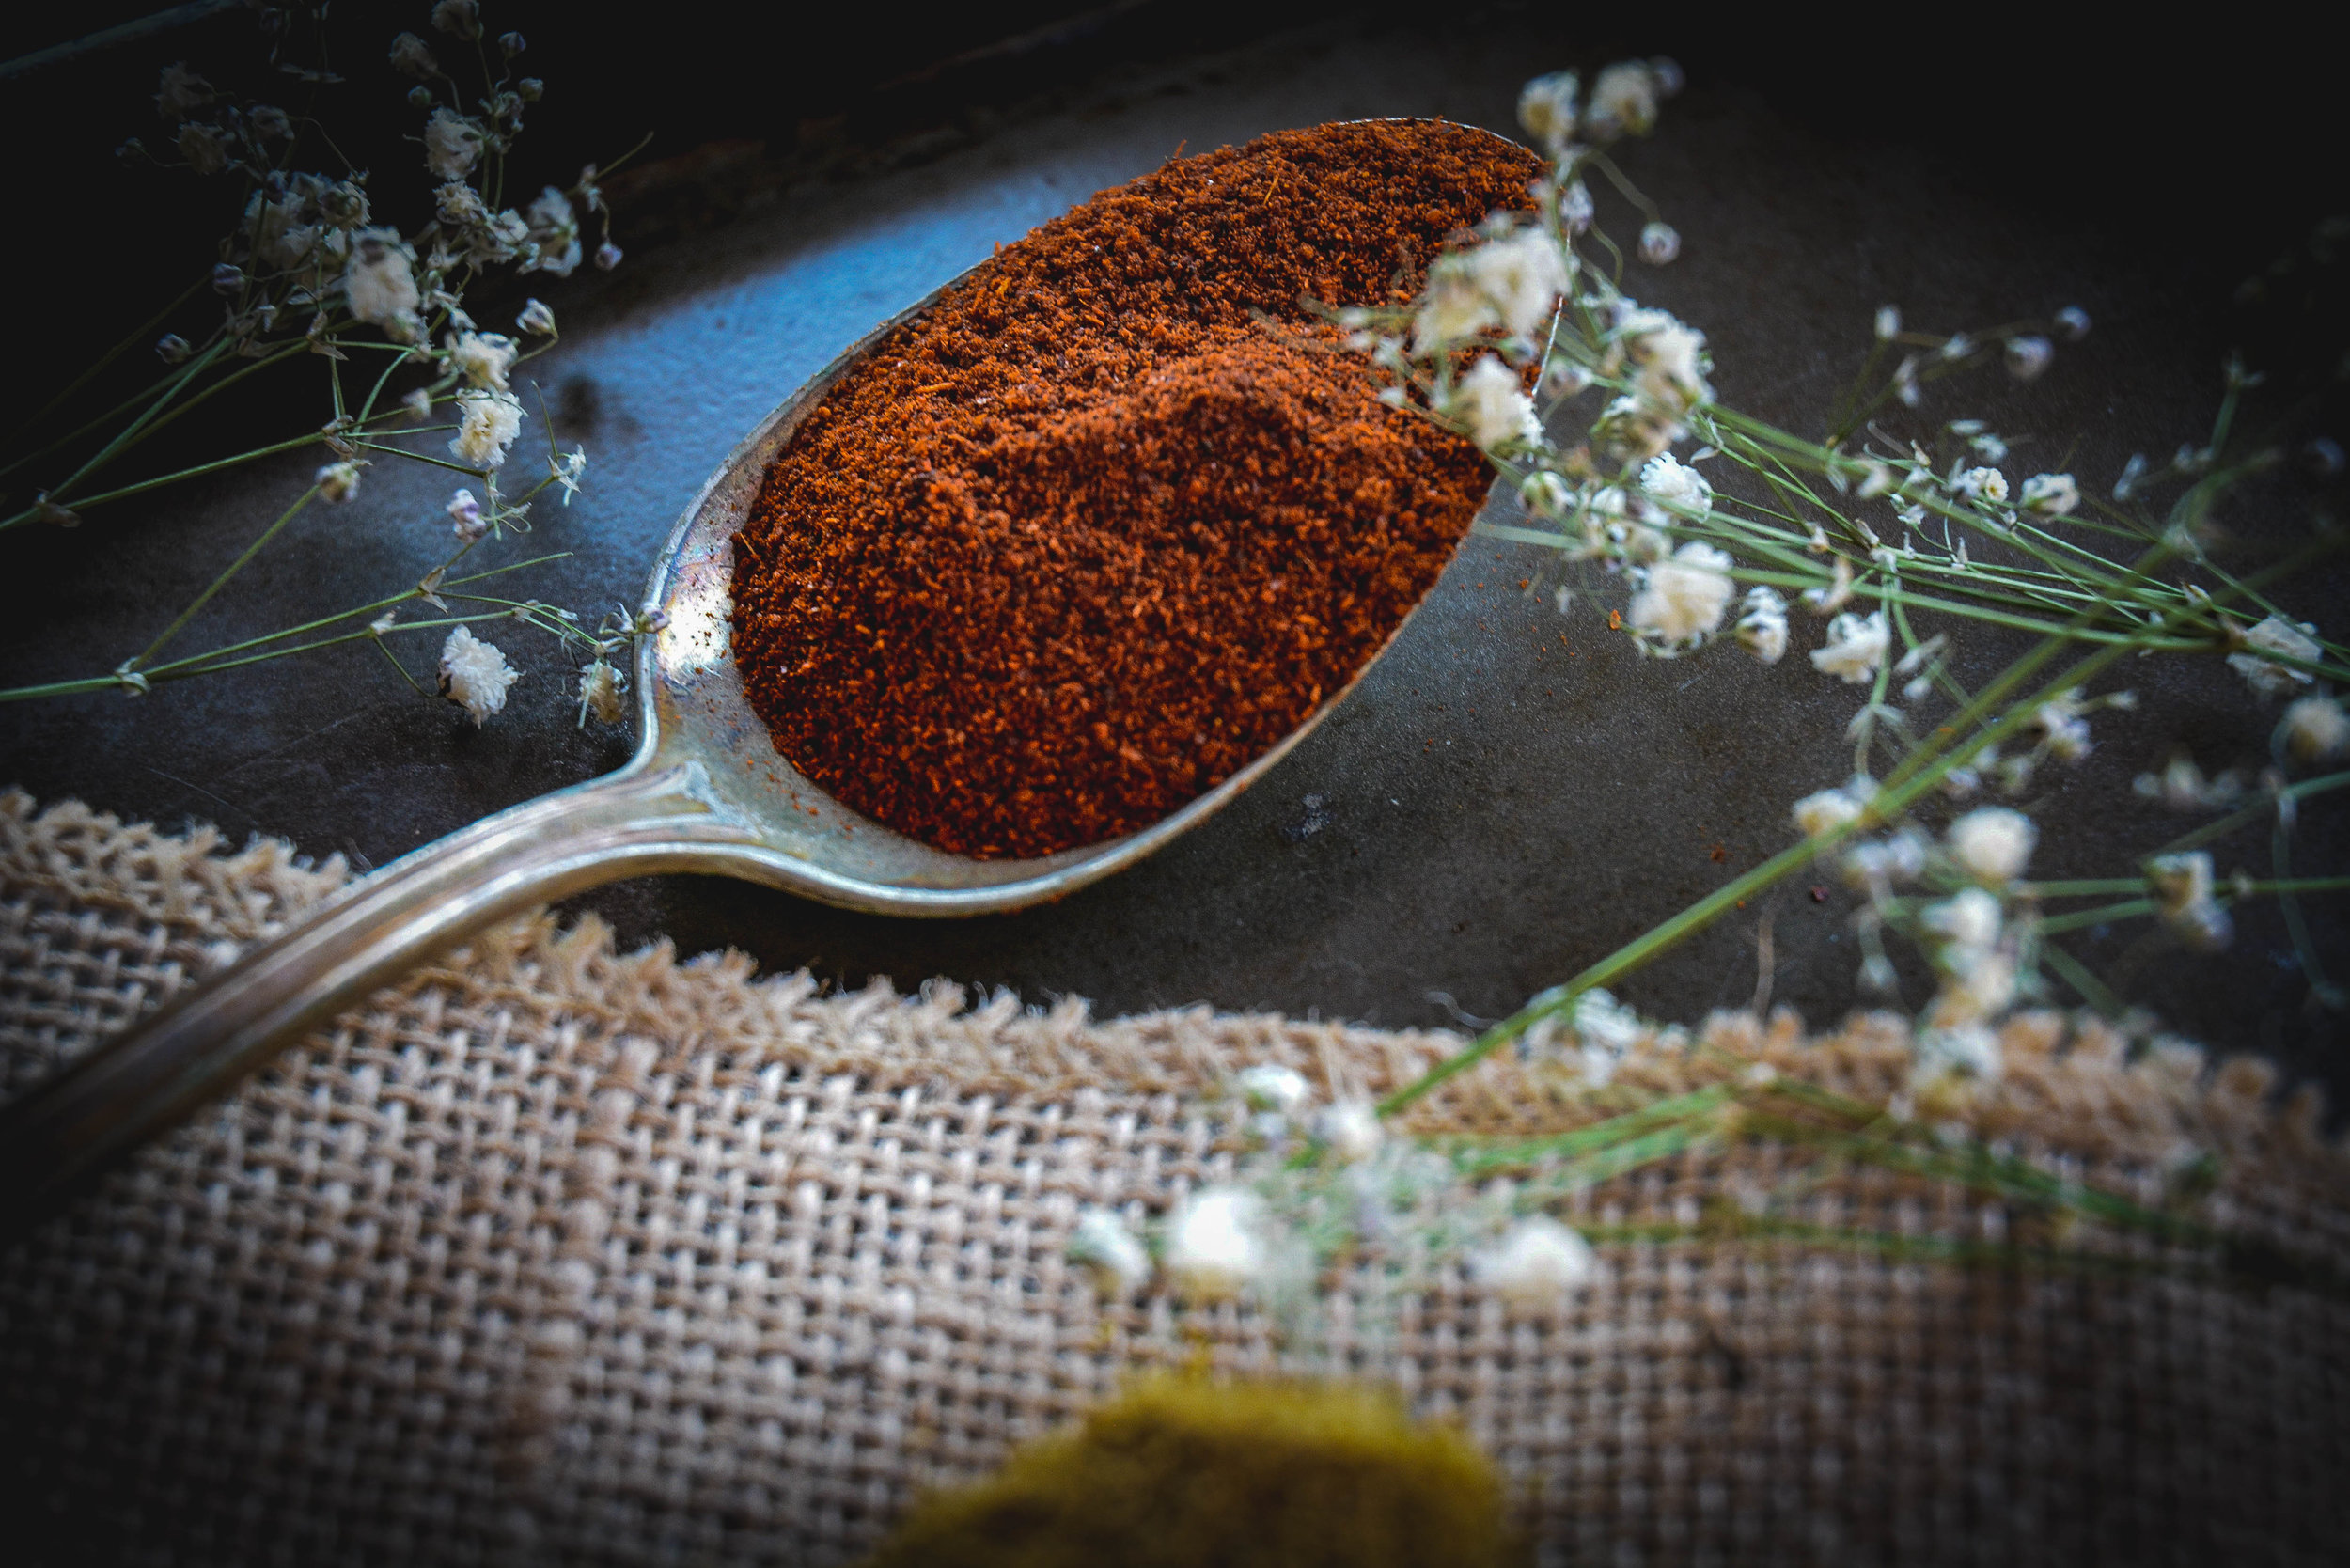 spoon and chili powder